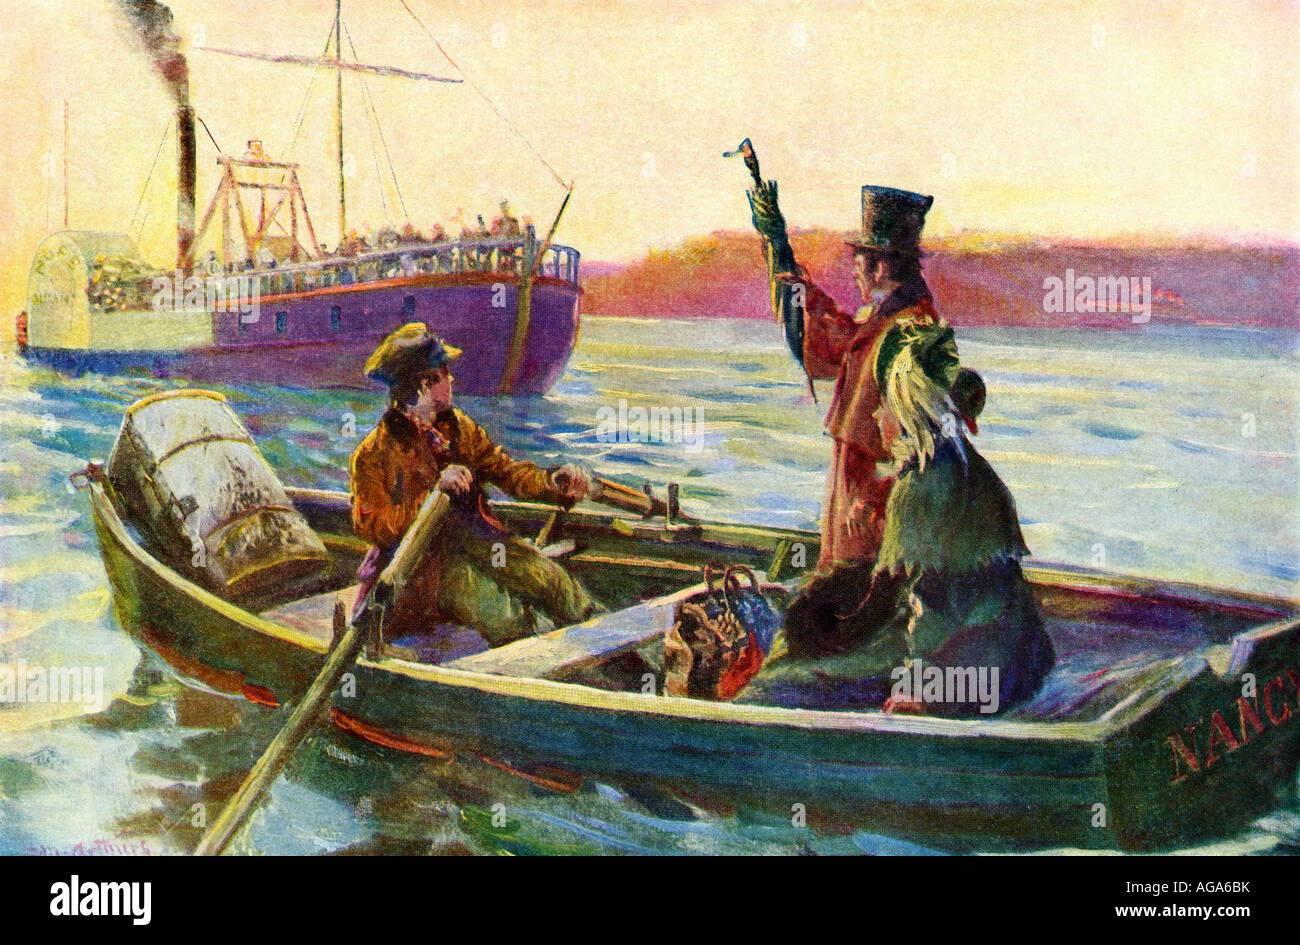 Passengers hailing a riverboat to board from a rowboat in mid stream early 1800s Stock Photo